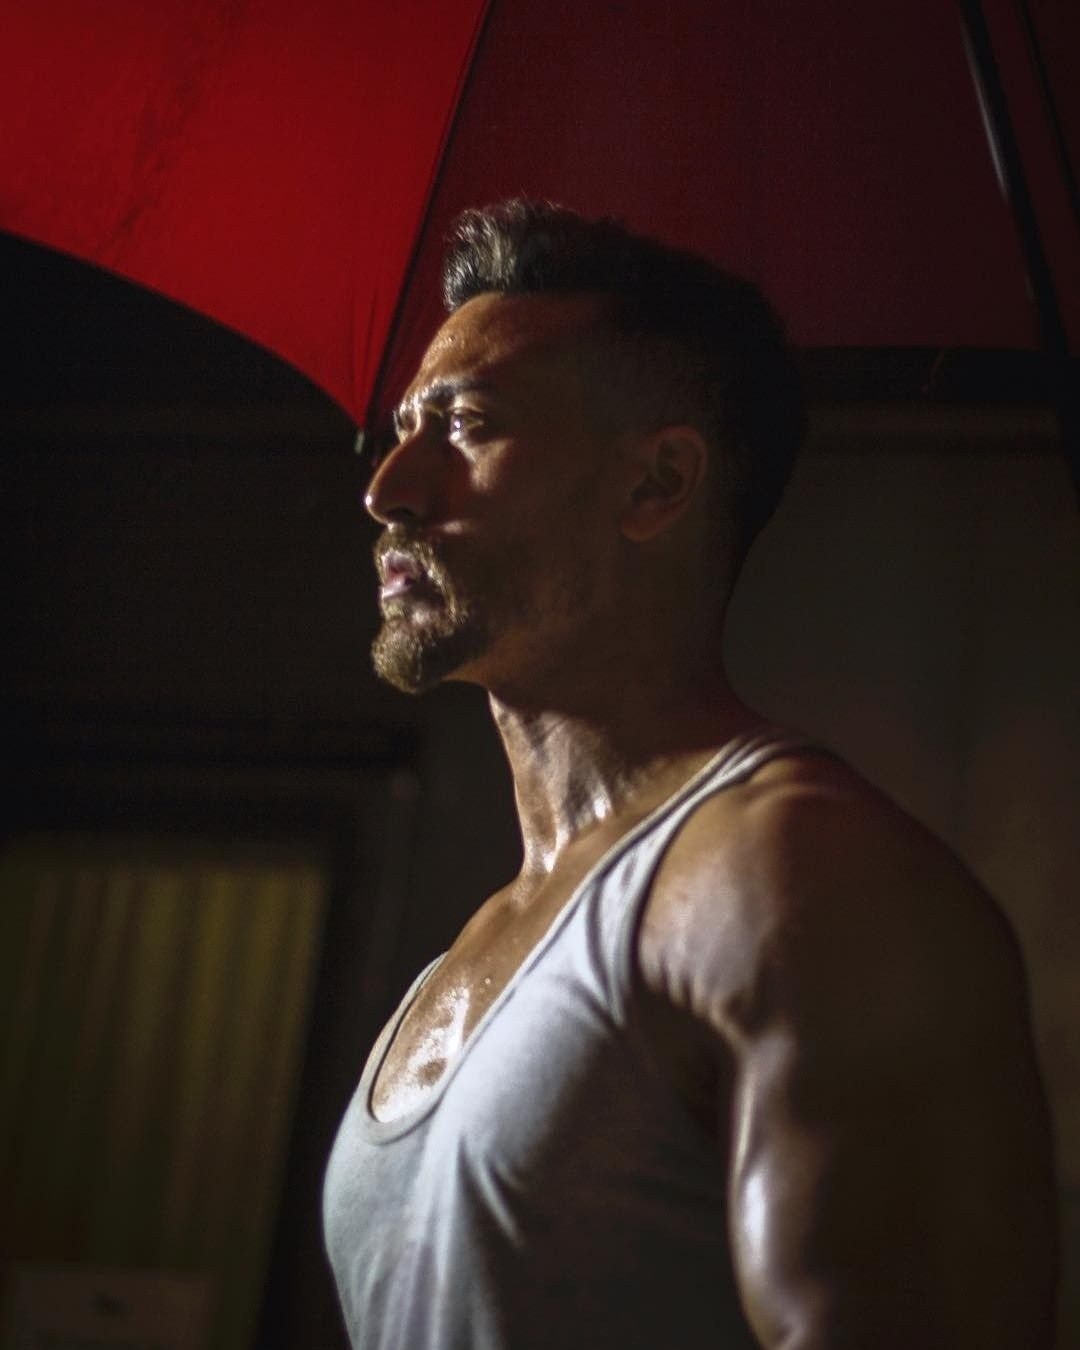 Tiger Shroff New Look For Baaghi 2 Movie Bollywood Tiger Shroff Tiger Shroff Body Actors